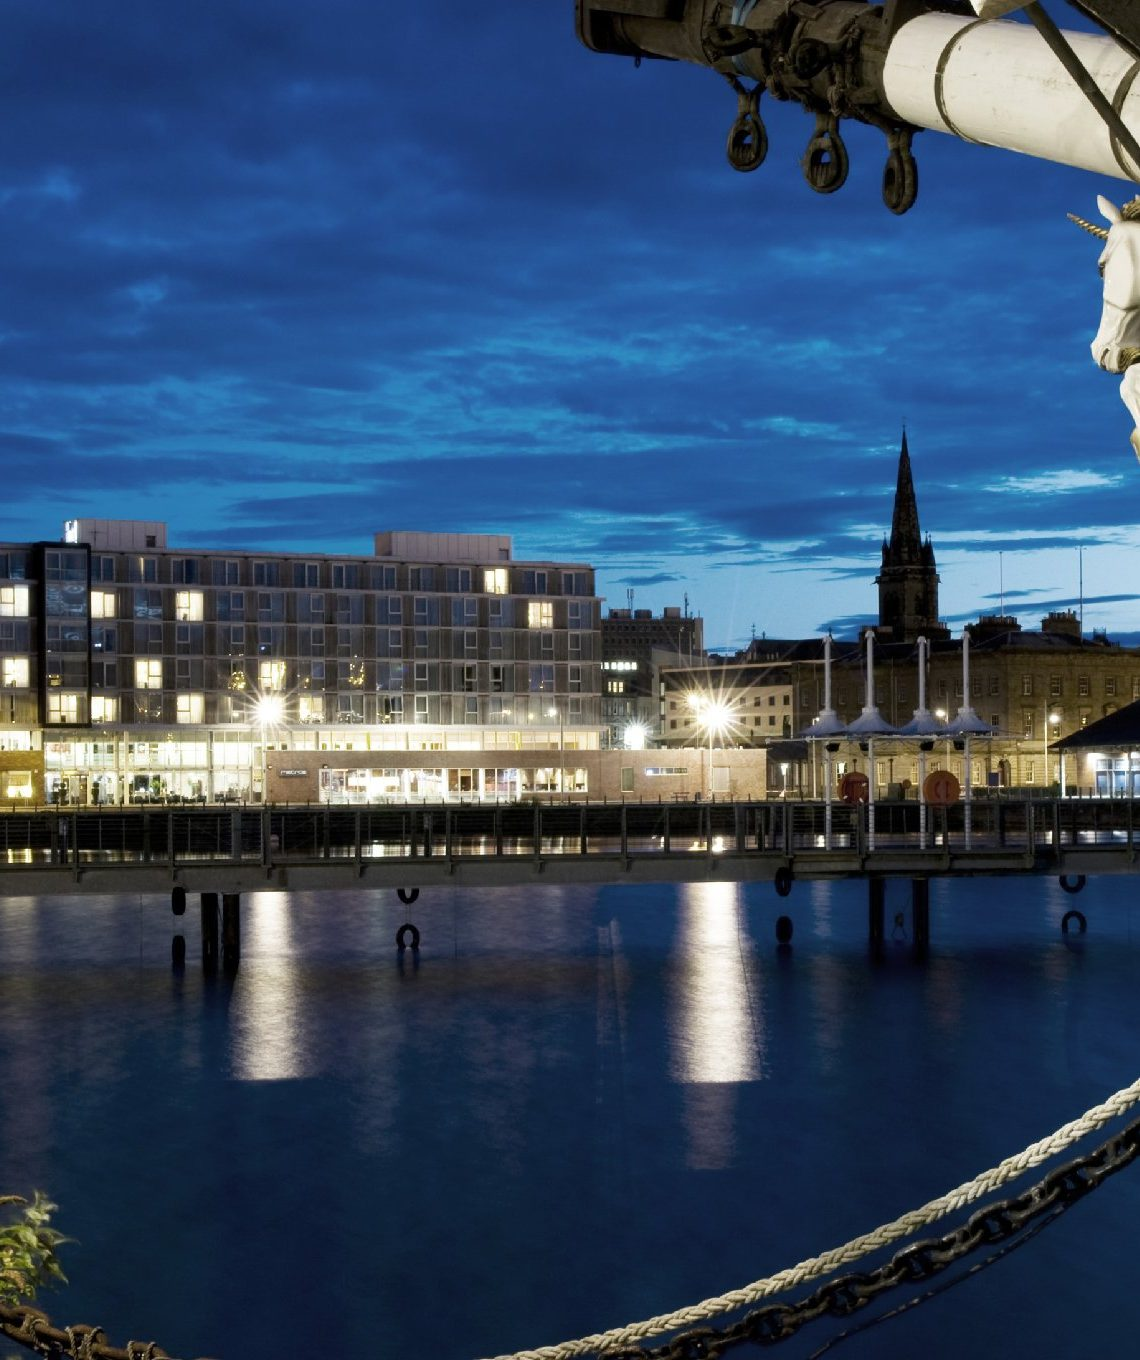 Today I Am Thrilled To Spotlight On The Amazing Apex City Quay Hotel Spa One Of My Favourite Places Stay And A Fabulous Dundee Wedding Venue